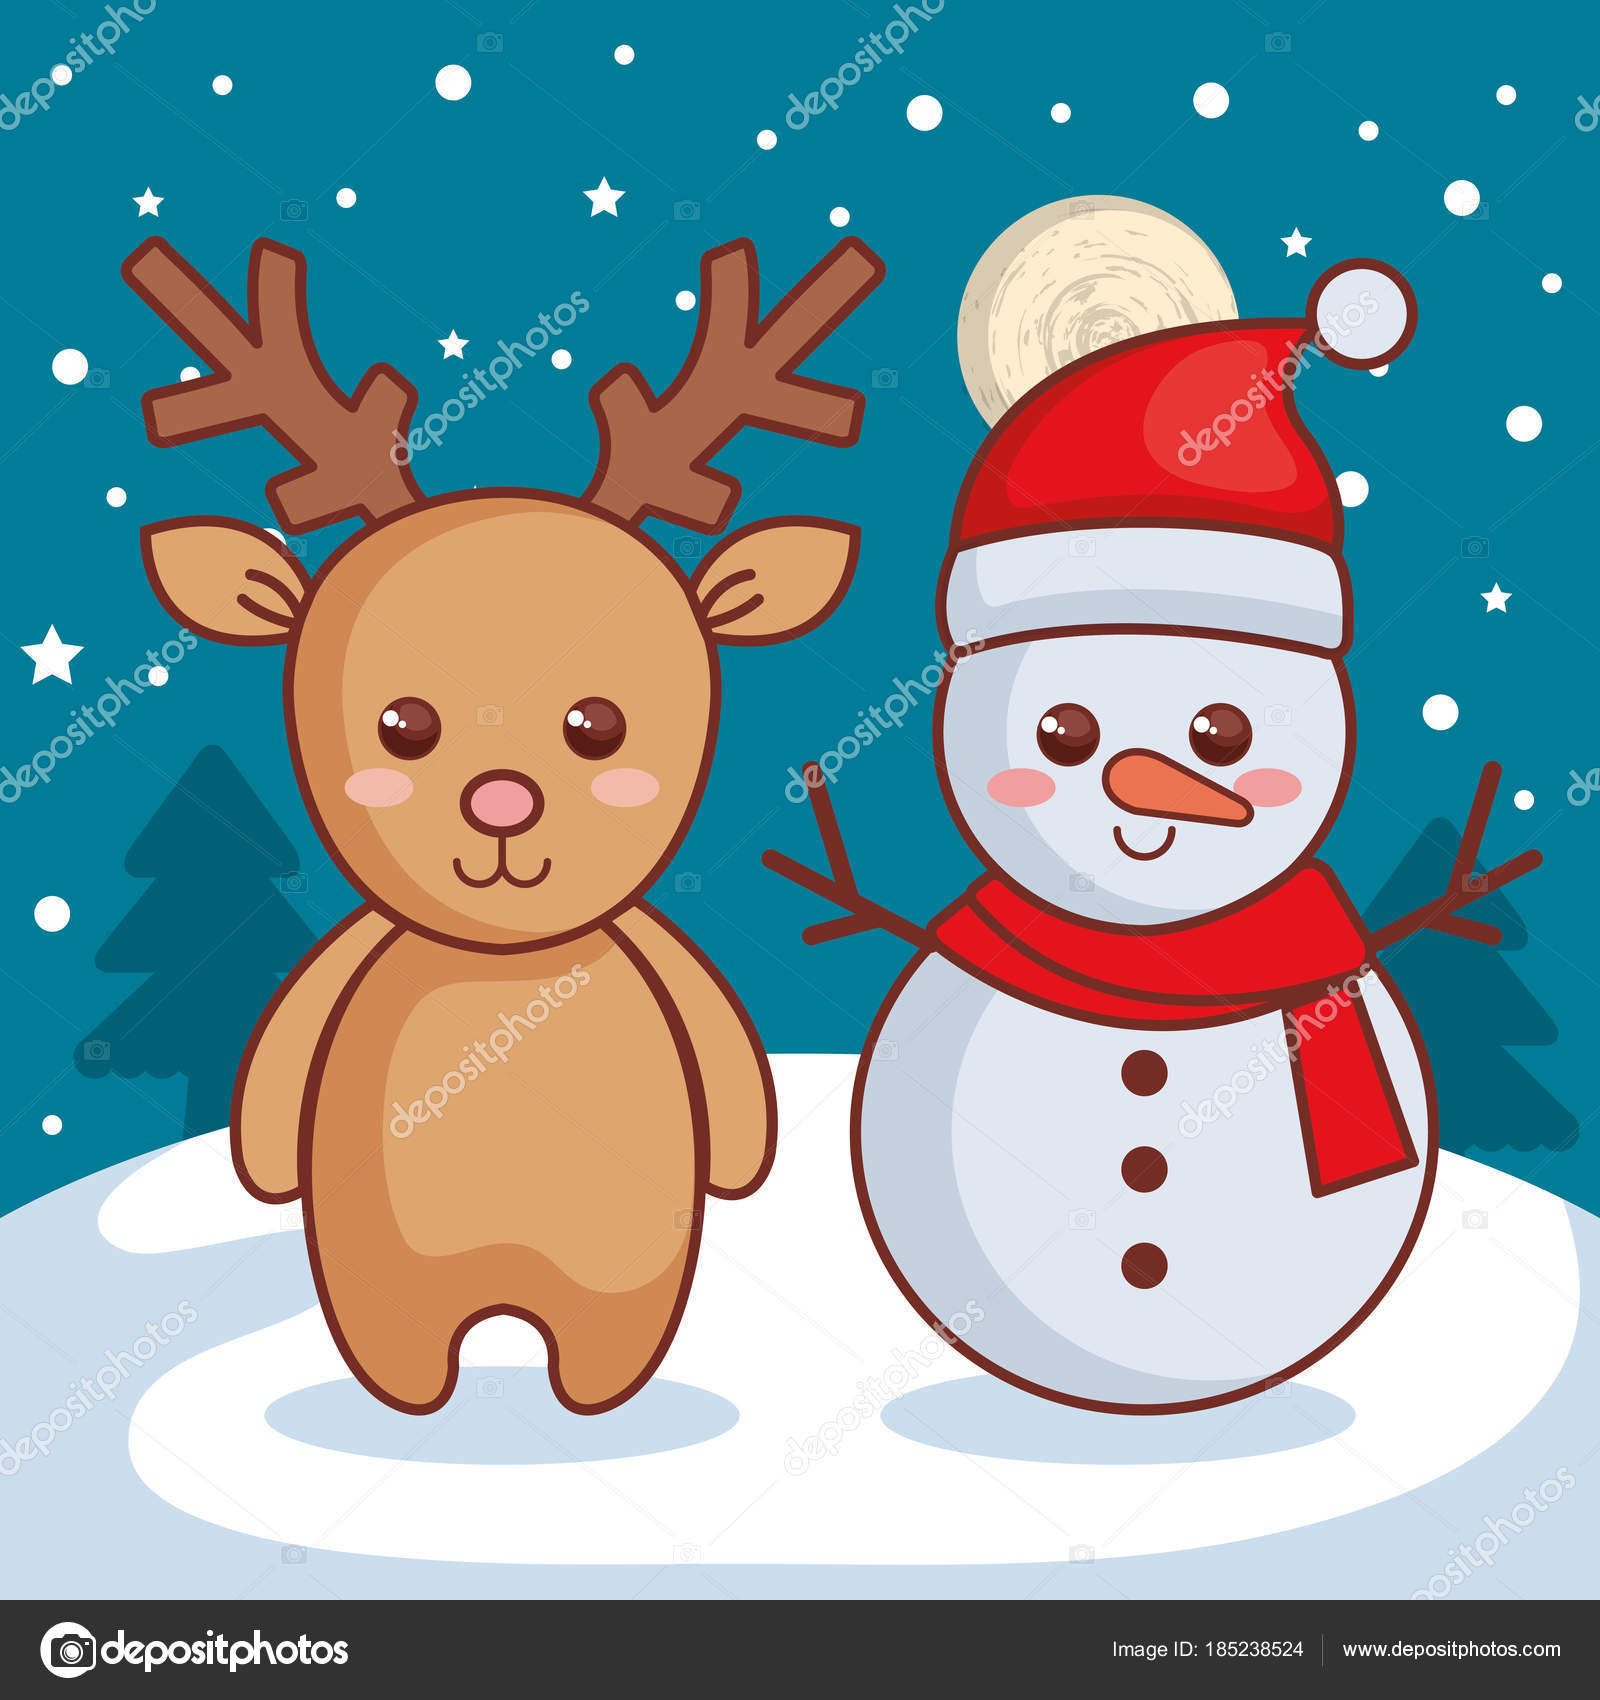 Reindeer with snowman christmas characters icon \u2014 Stock